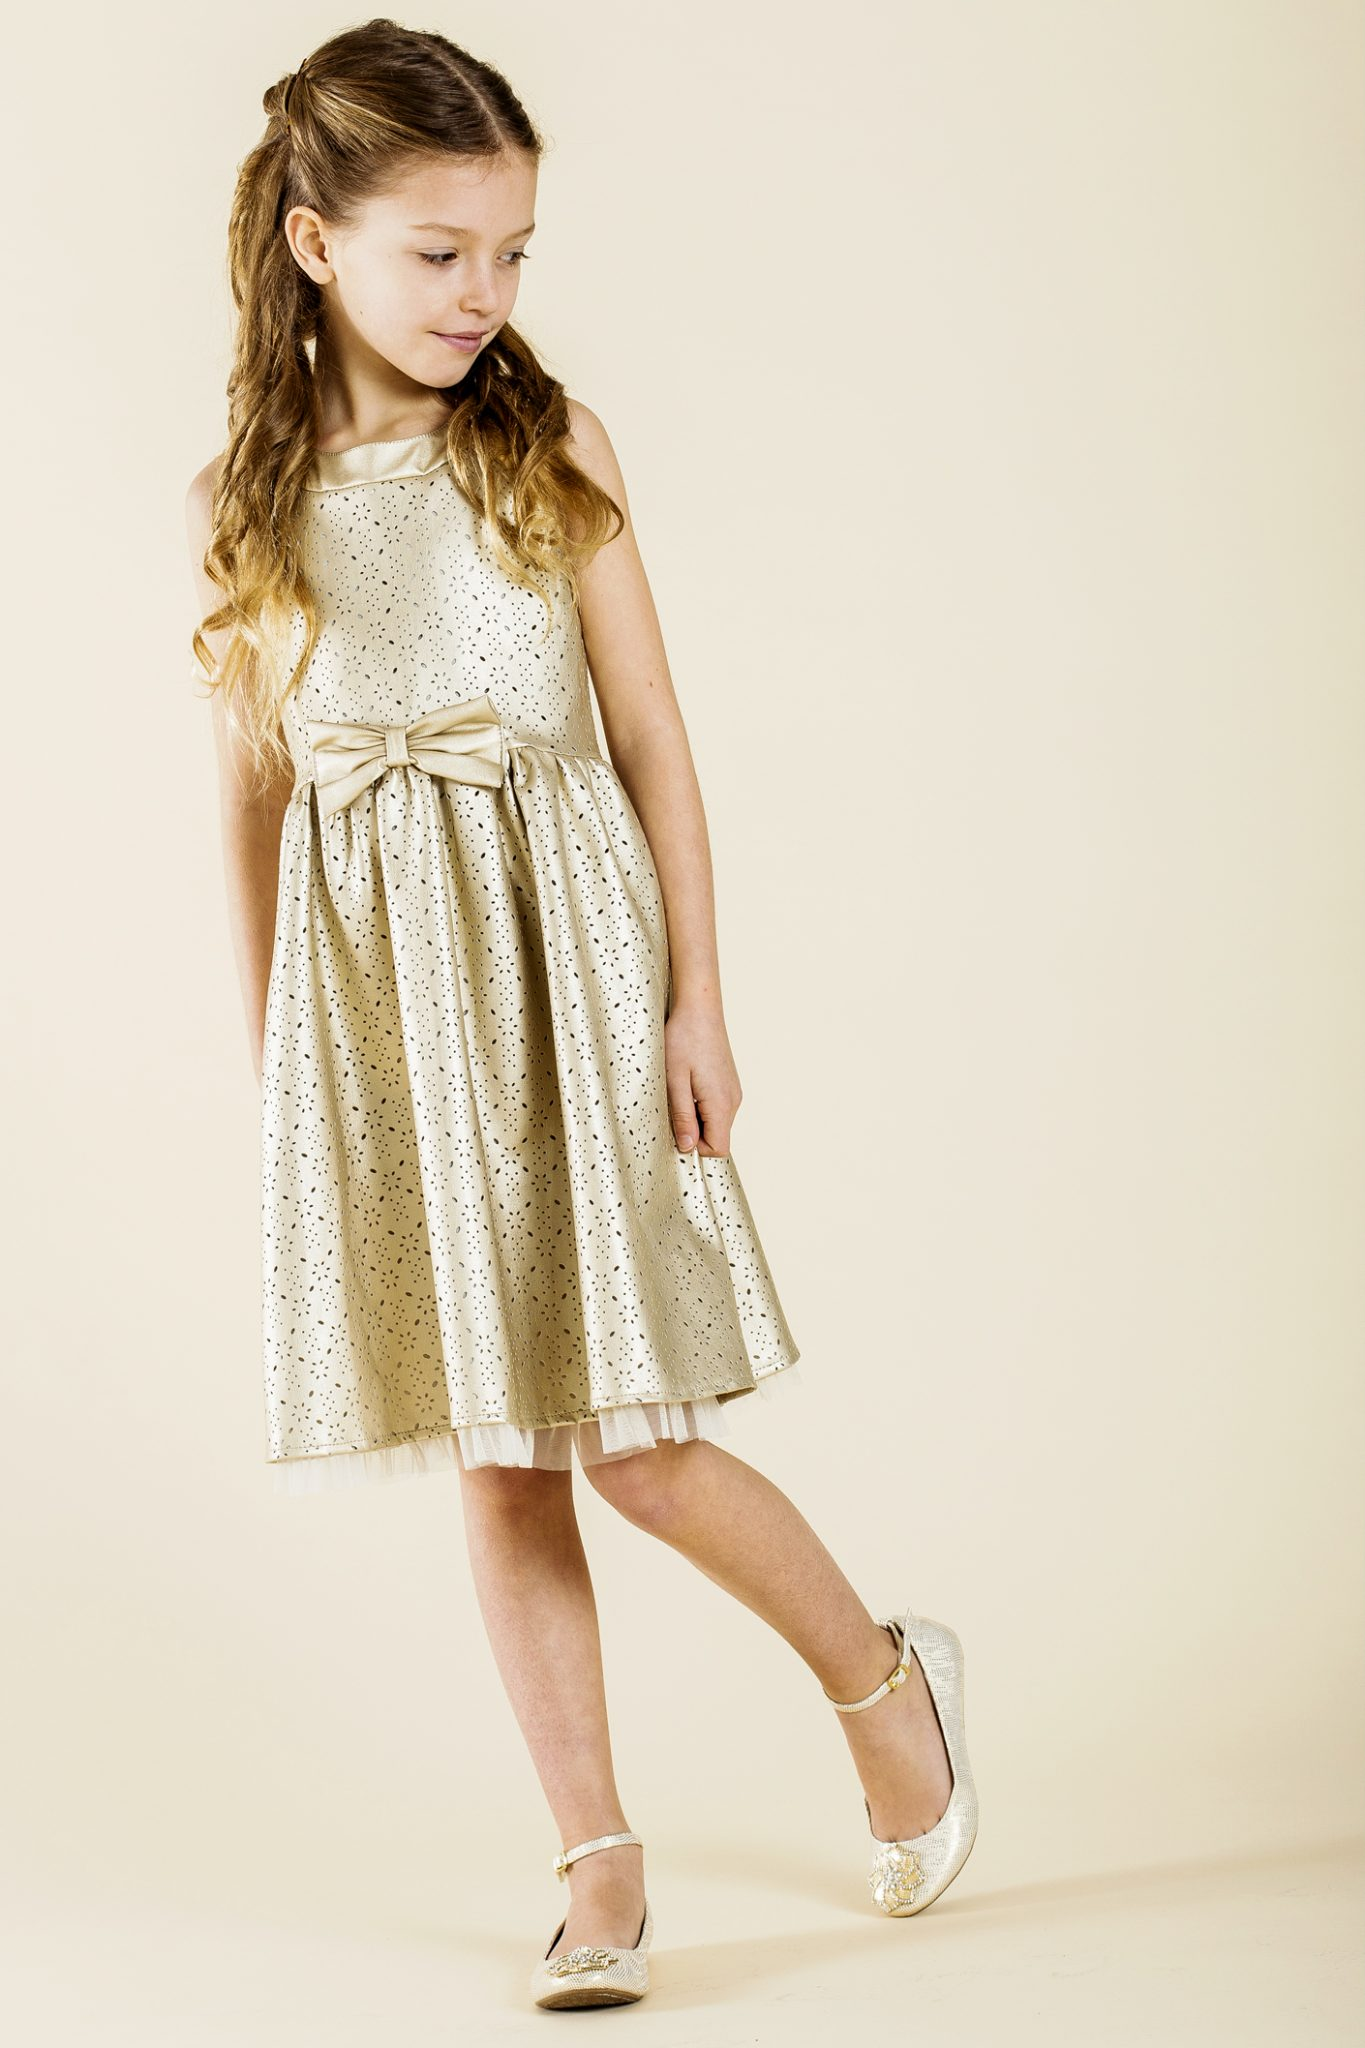 children-and-kids-fashion-photographer-in-manchester-chester-and-liverpool